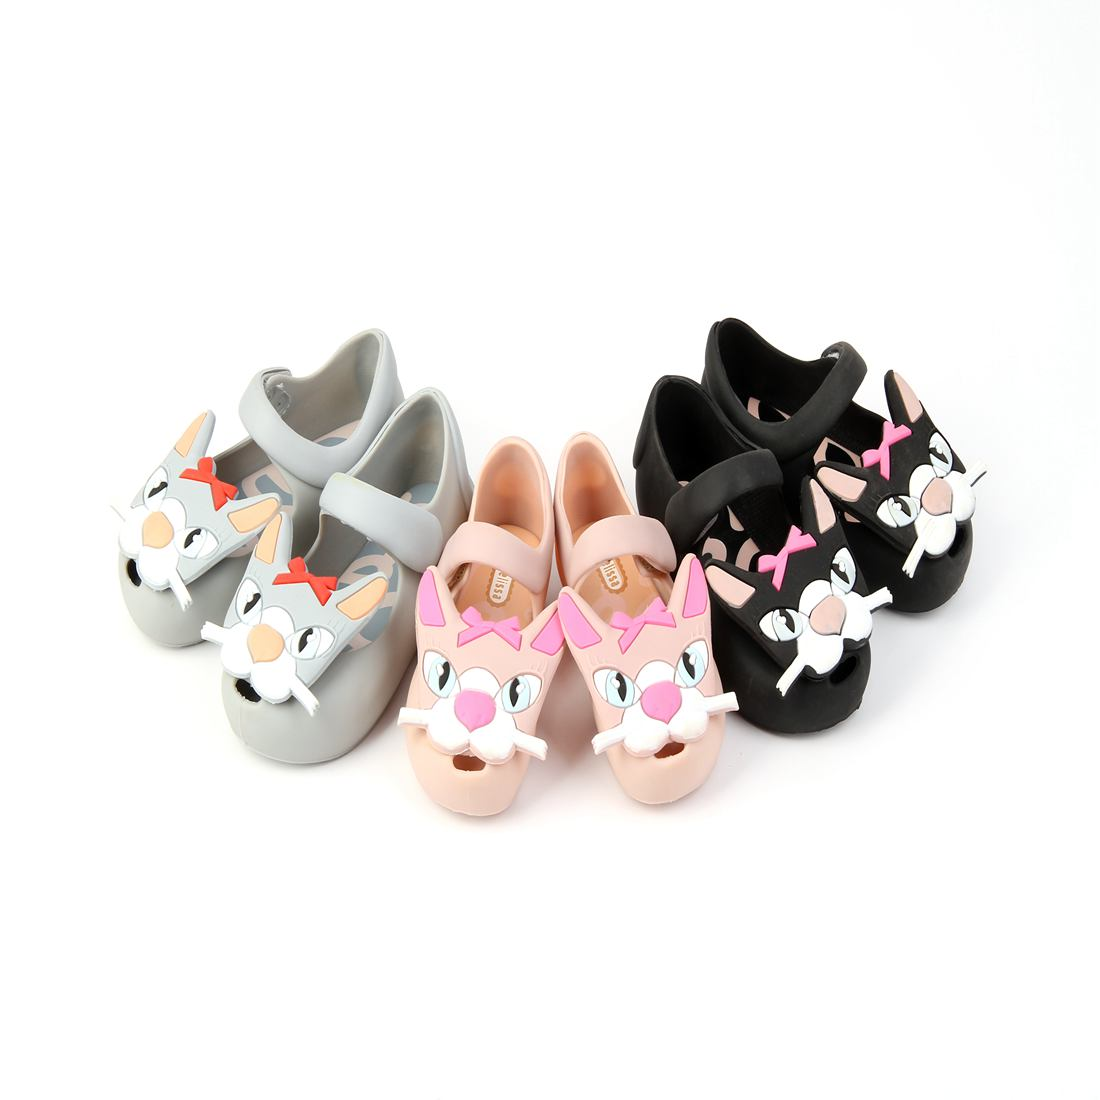 Melissa 2018 New Summer Mini Cat Sandals Big Face with Bow Classic Girls Low-Top Shoes Nonslip Kids Shoe Soft Leather PVC Sandal